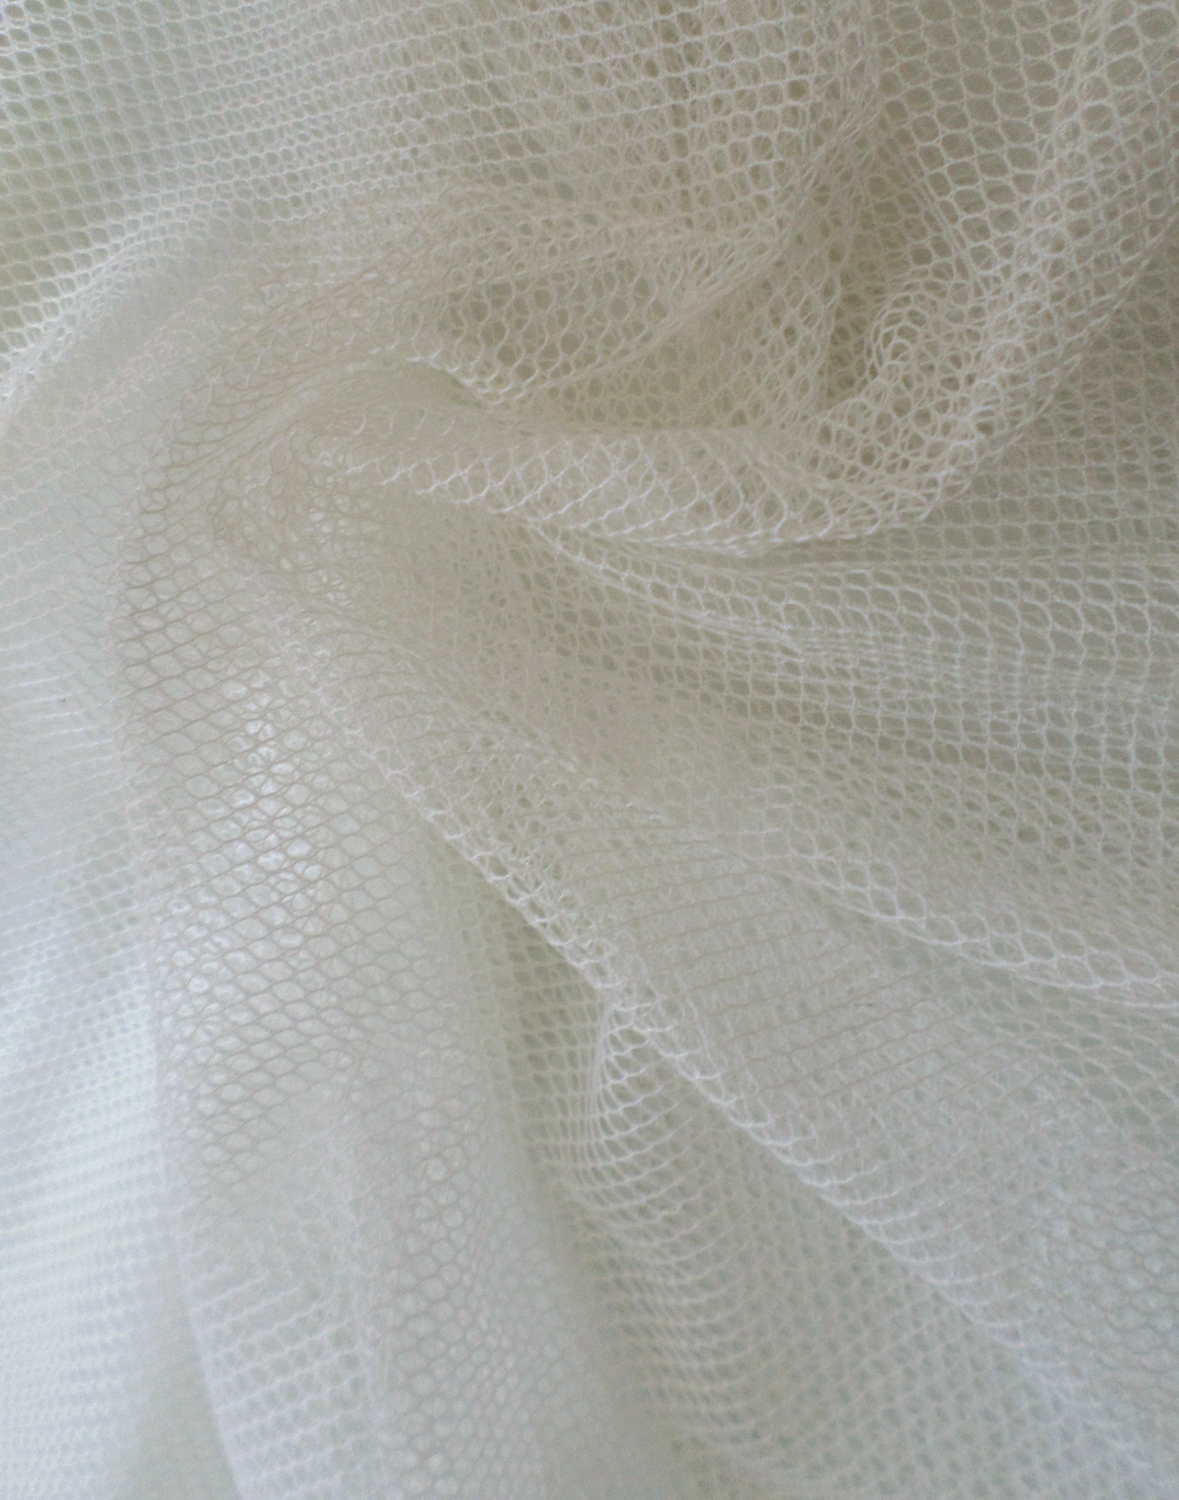 Bobbinet tulle netting wholesale apparel fabric for Apparel fabric